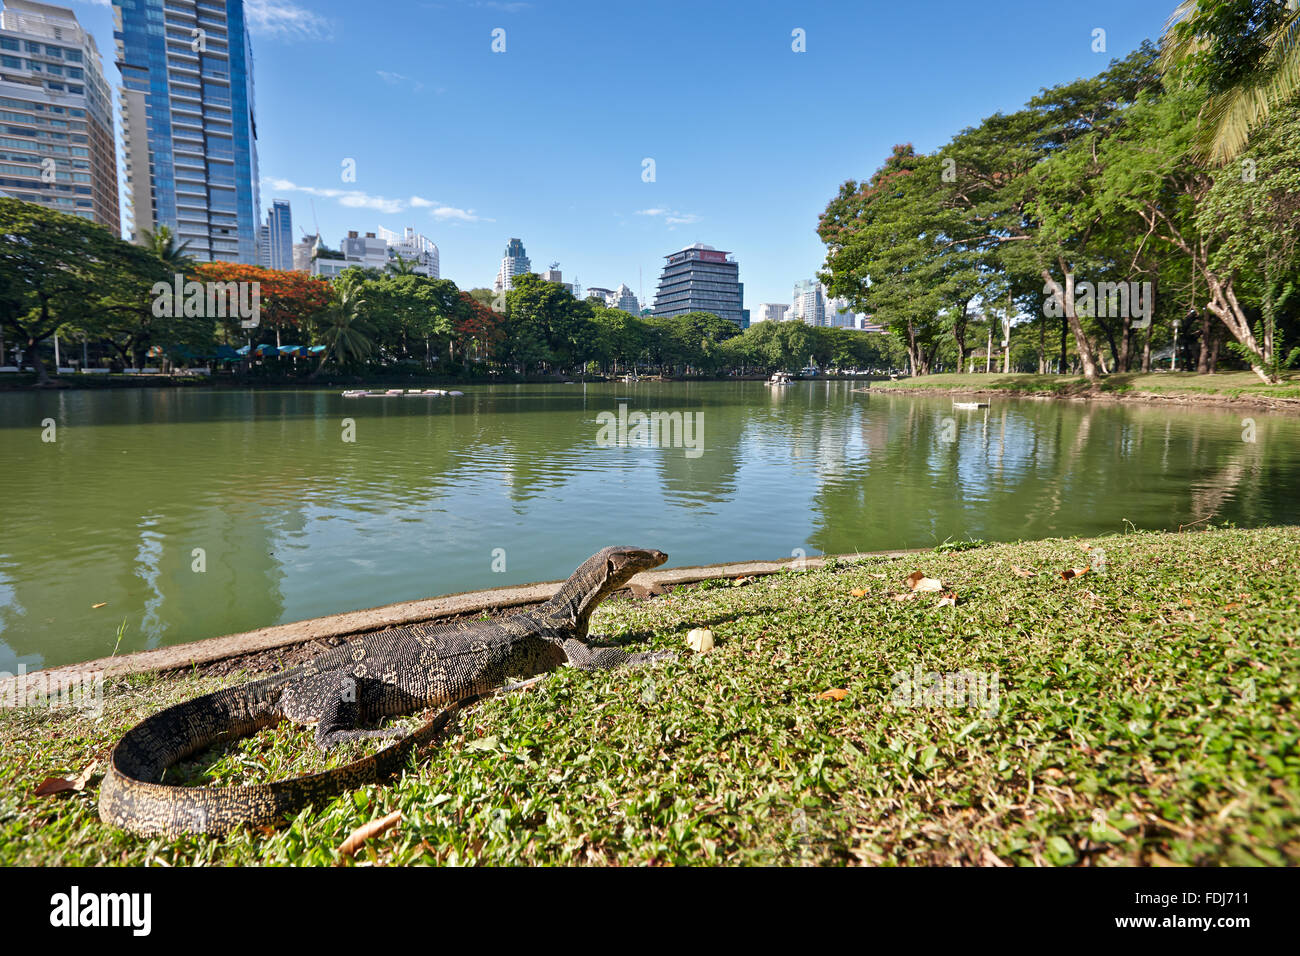 Big monitor lizard sunbathing on green grass near the lake in Lumphini Park. Bangkok, Thailand. - Stock Image